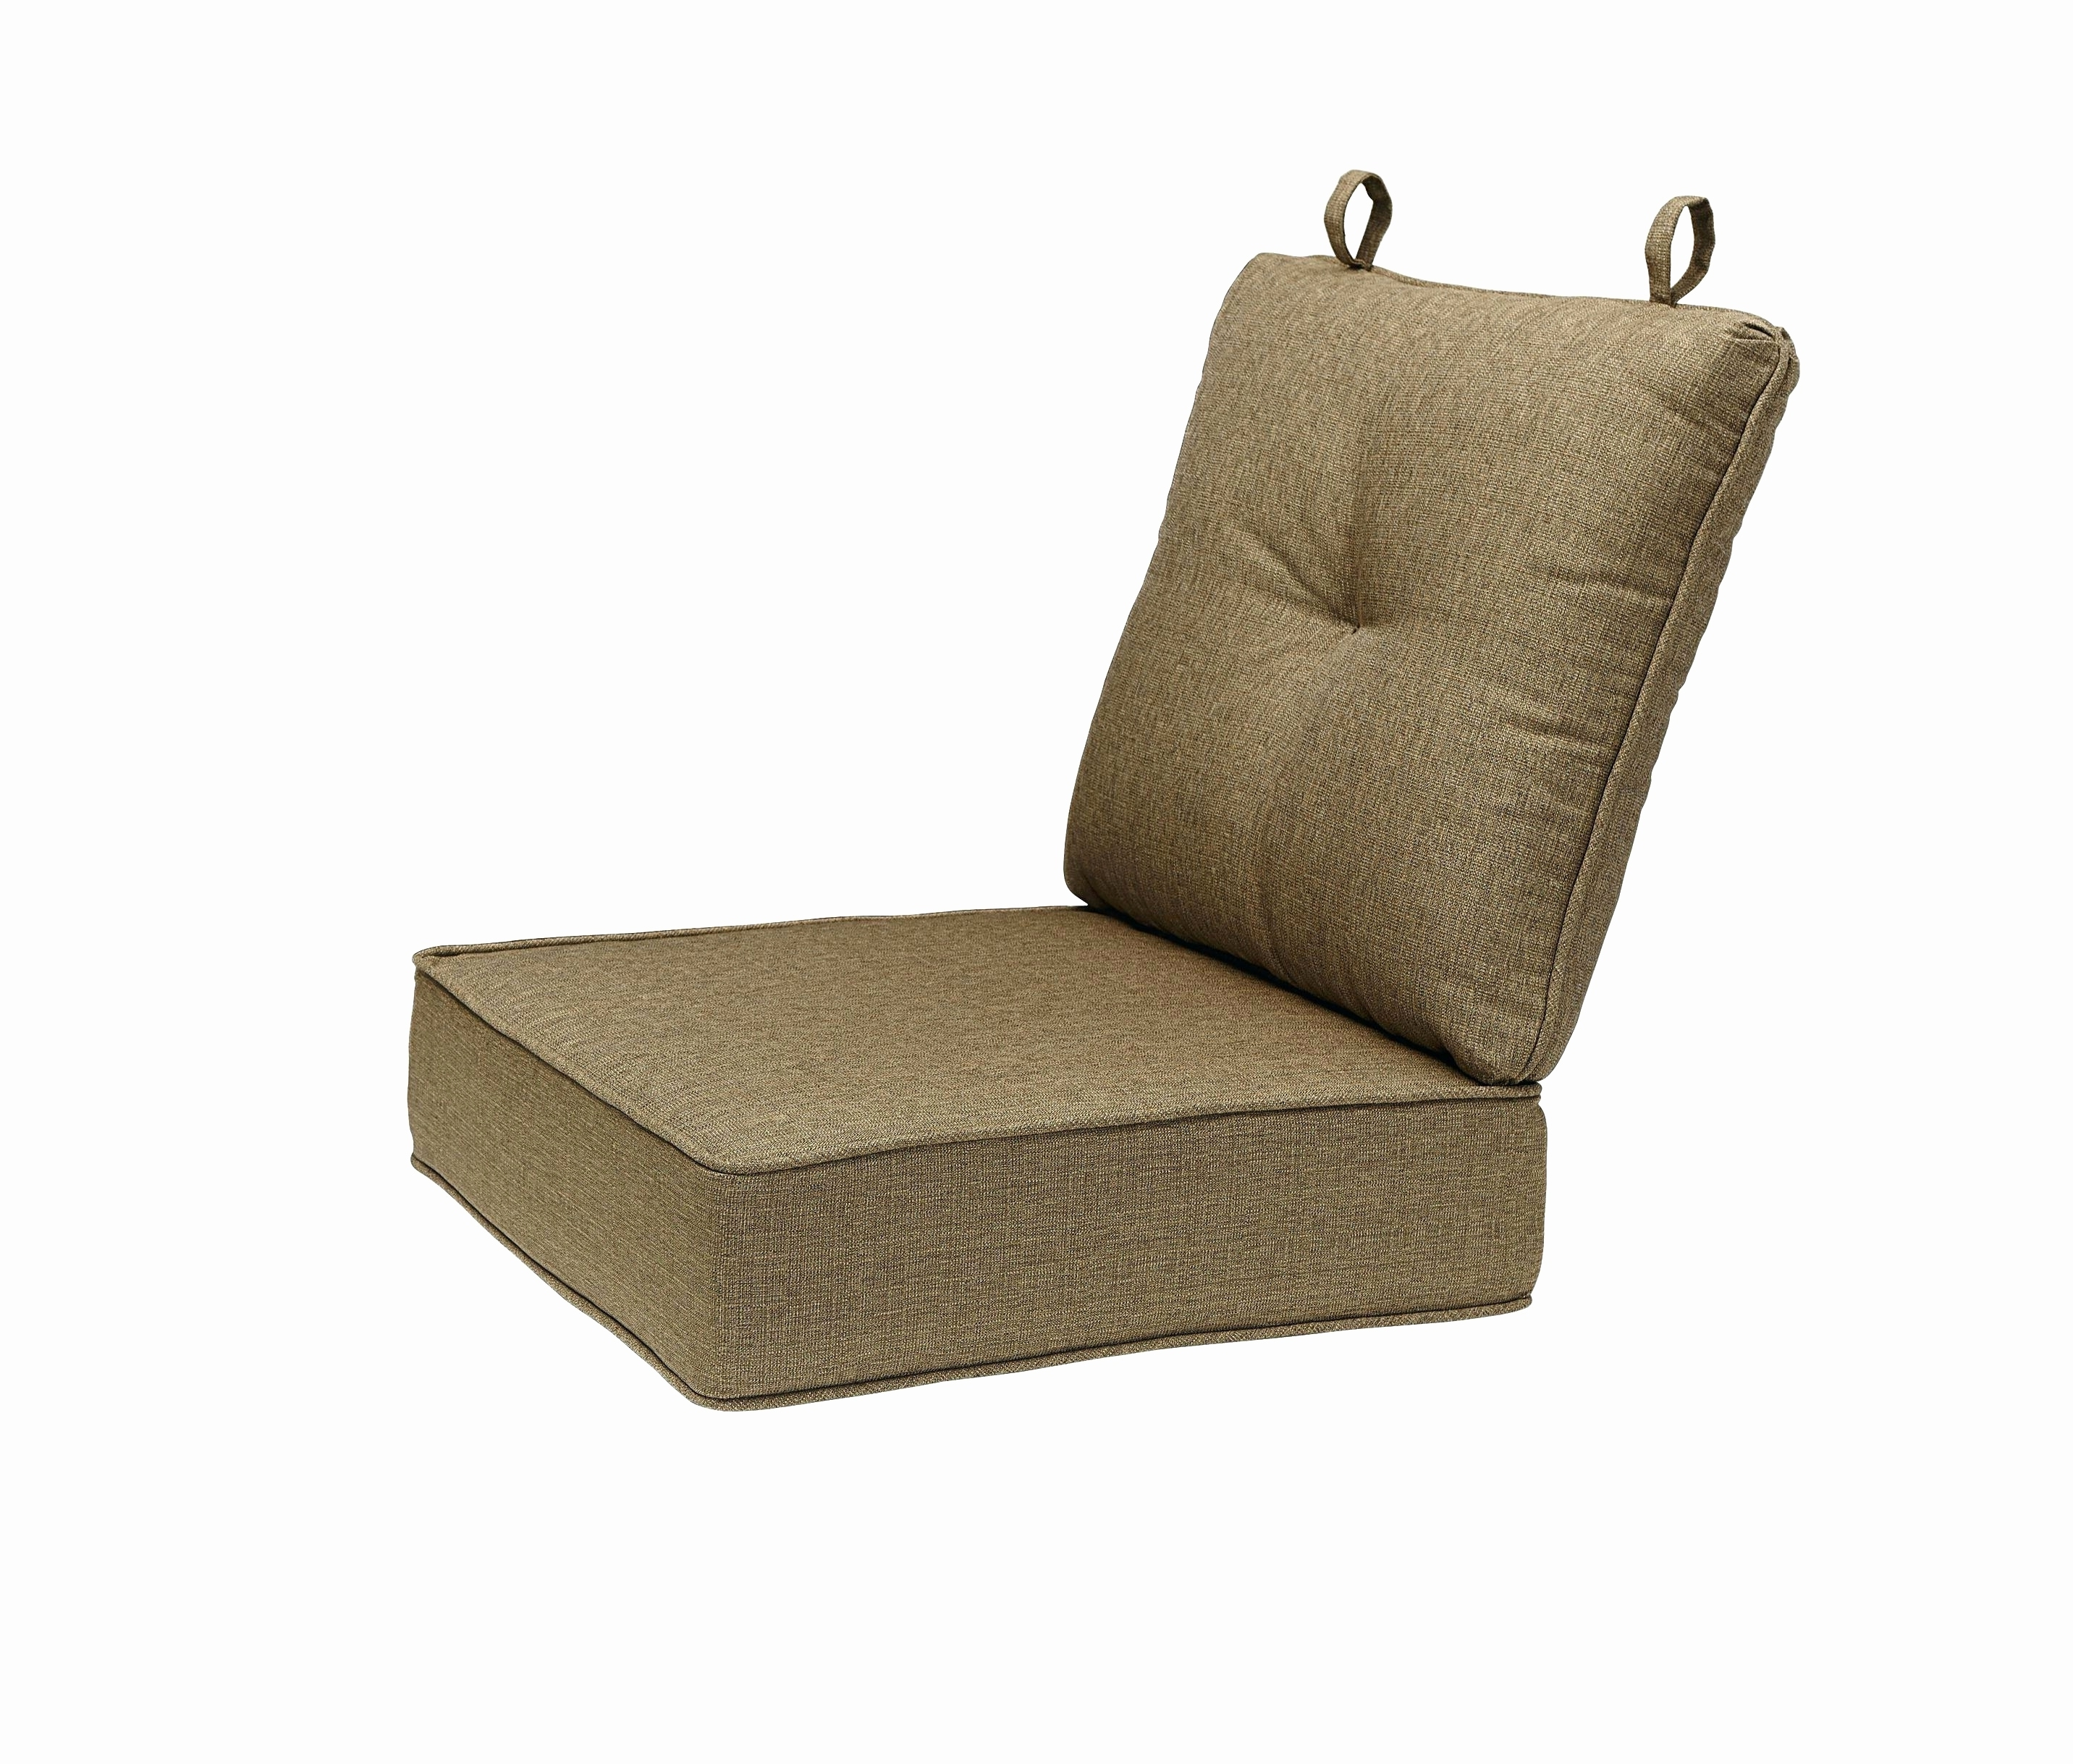 Home With Regard To Trendy Chaise Lounge Chairs At Big Lots (View 8 of 15)